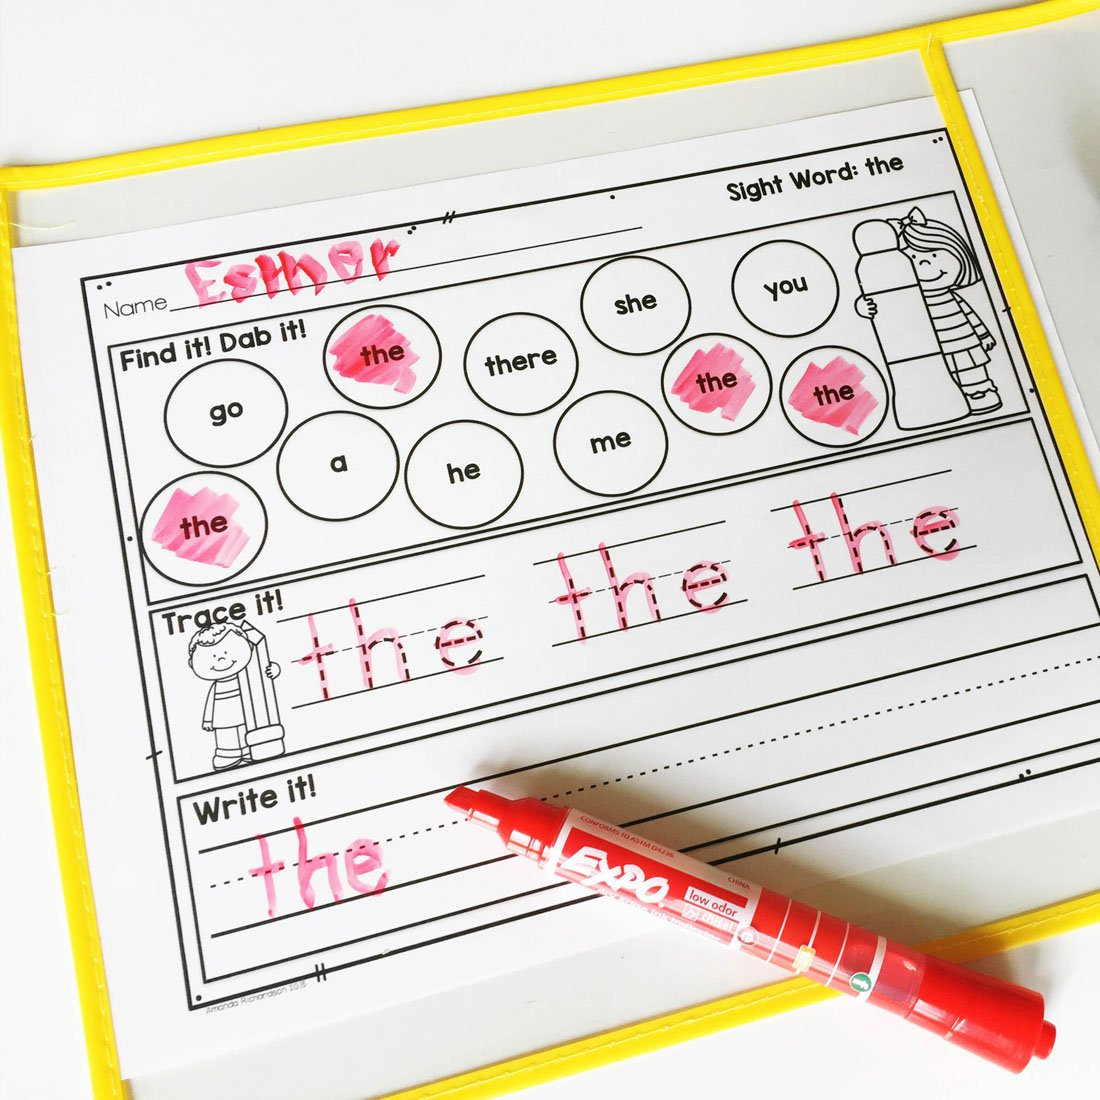 worksheet-completed-in-red-expo-ink-indicator-marker.jpg